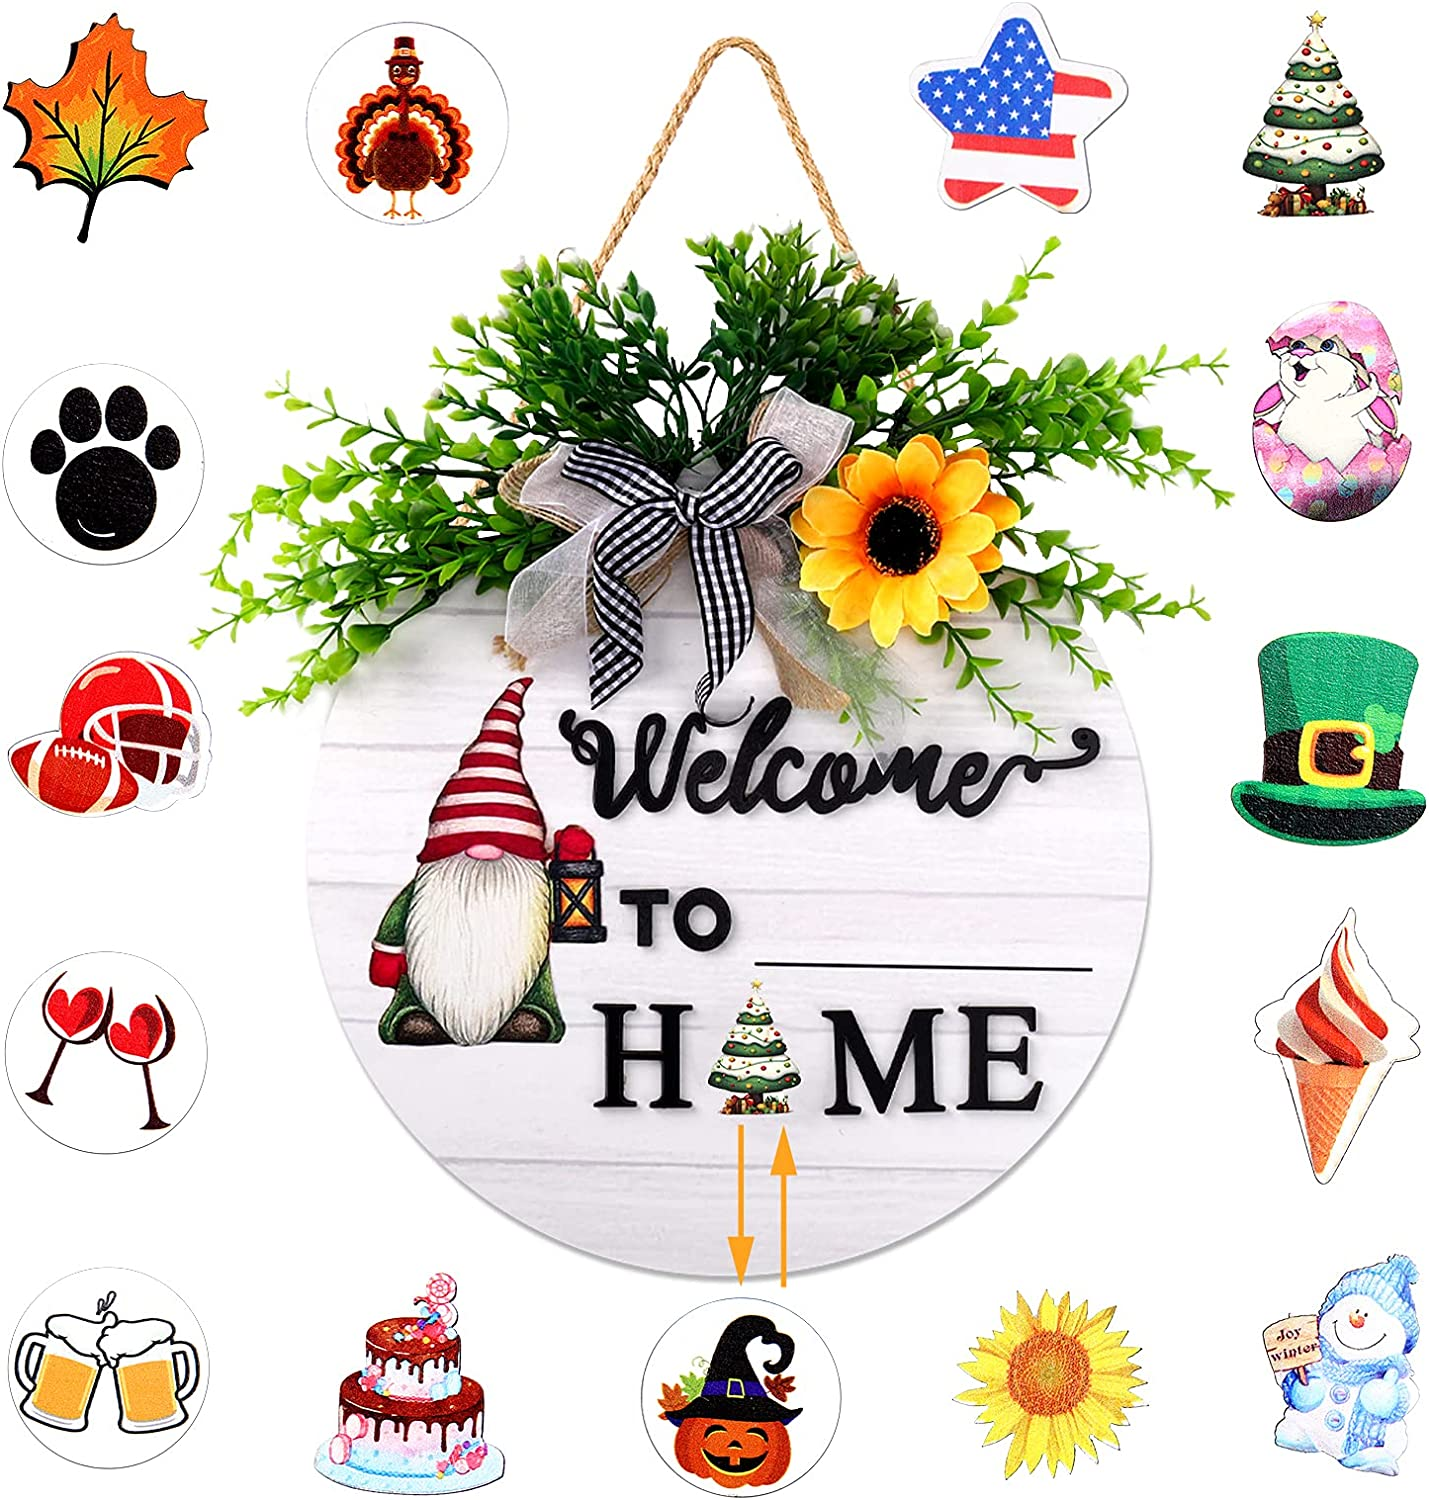 Interchangeable Welcome sign for front door, welcome door wreath, Welcome Home Sign wreath with 15 Seasonal signs, Festive front door decor sign with DIY name, front porch decor for door, wall, window